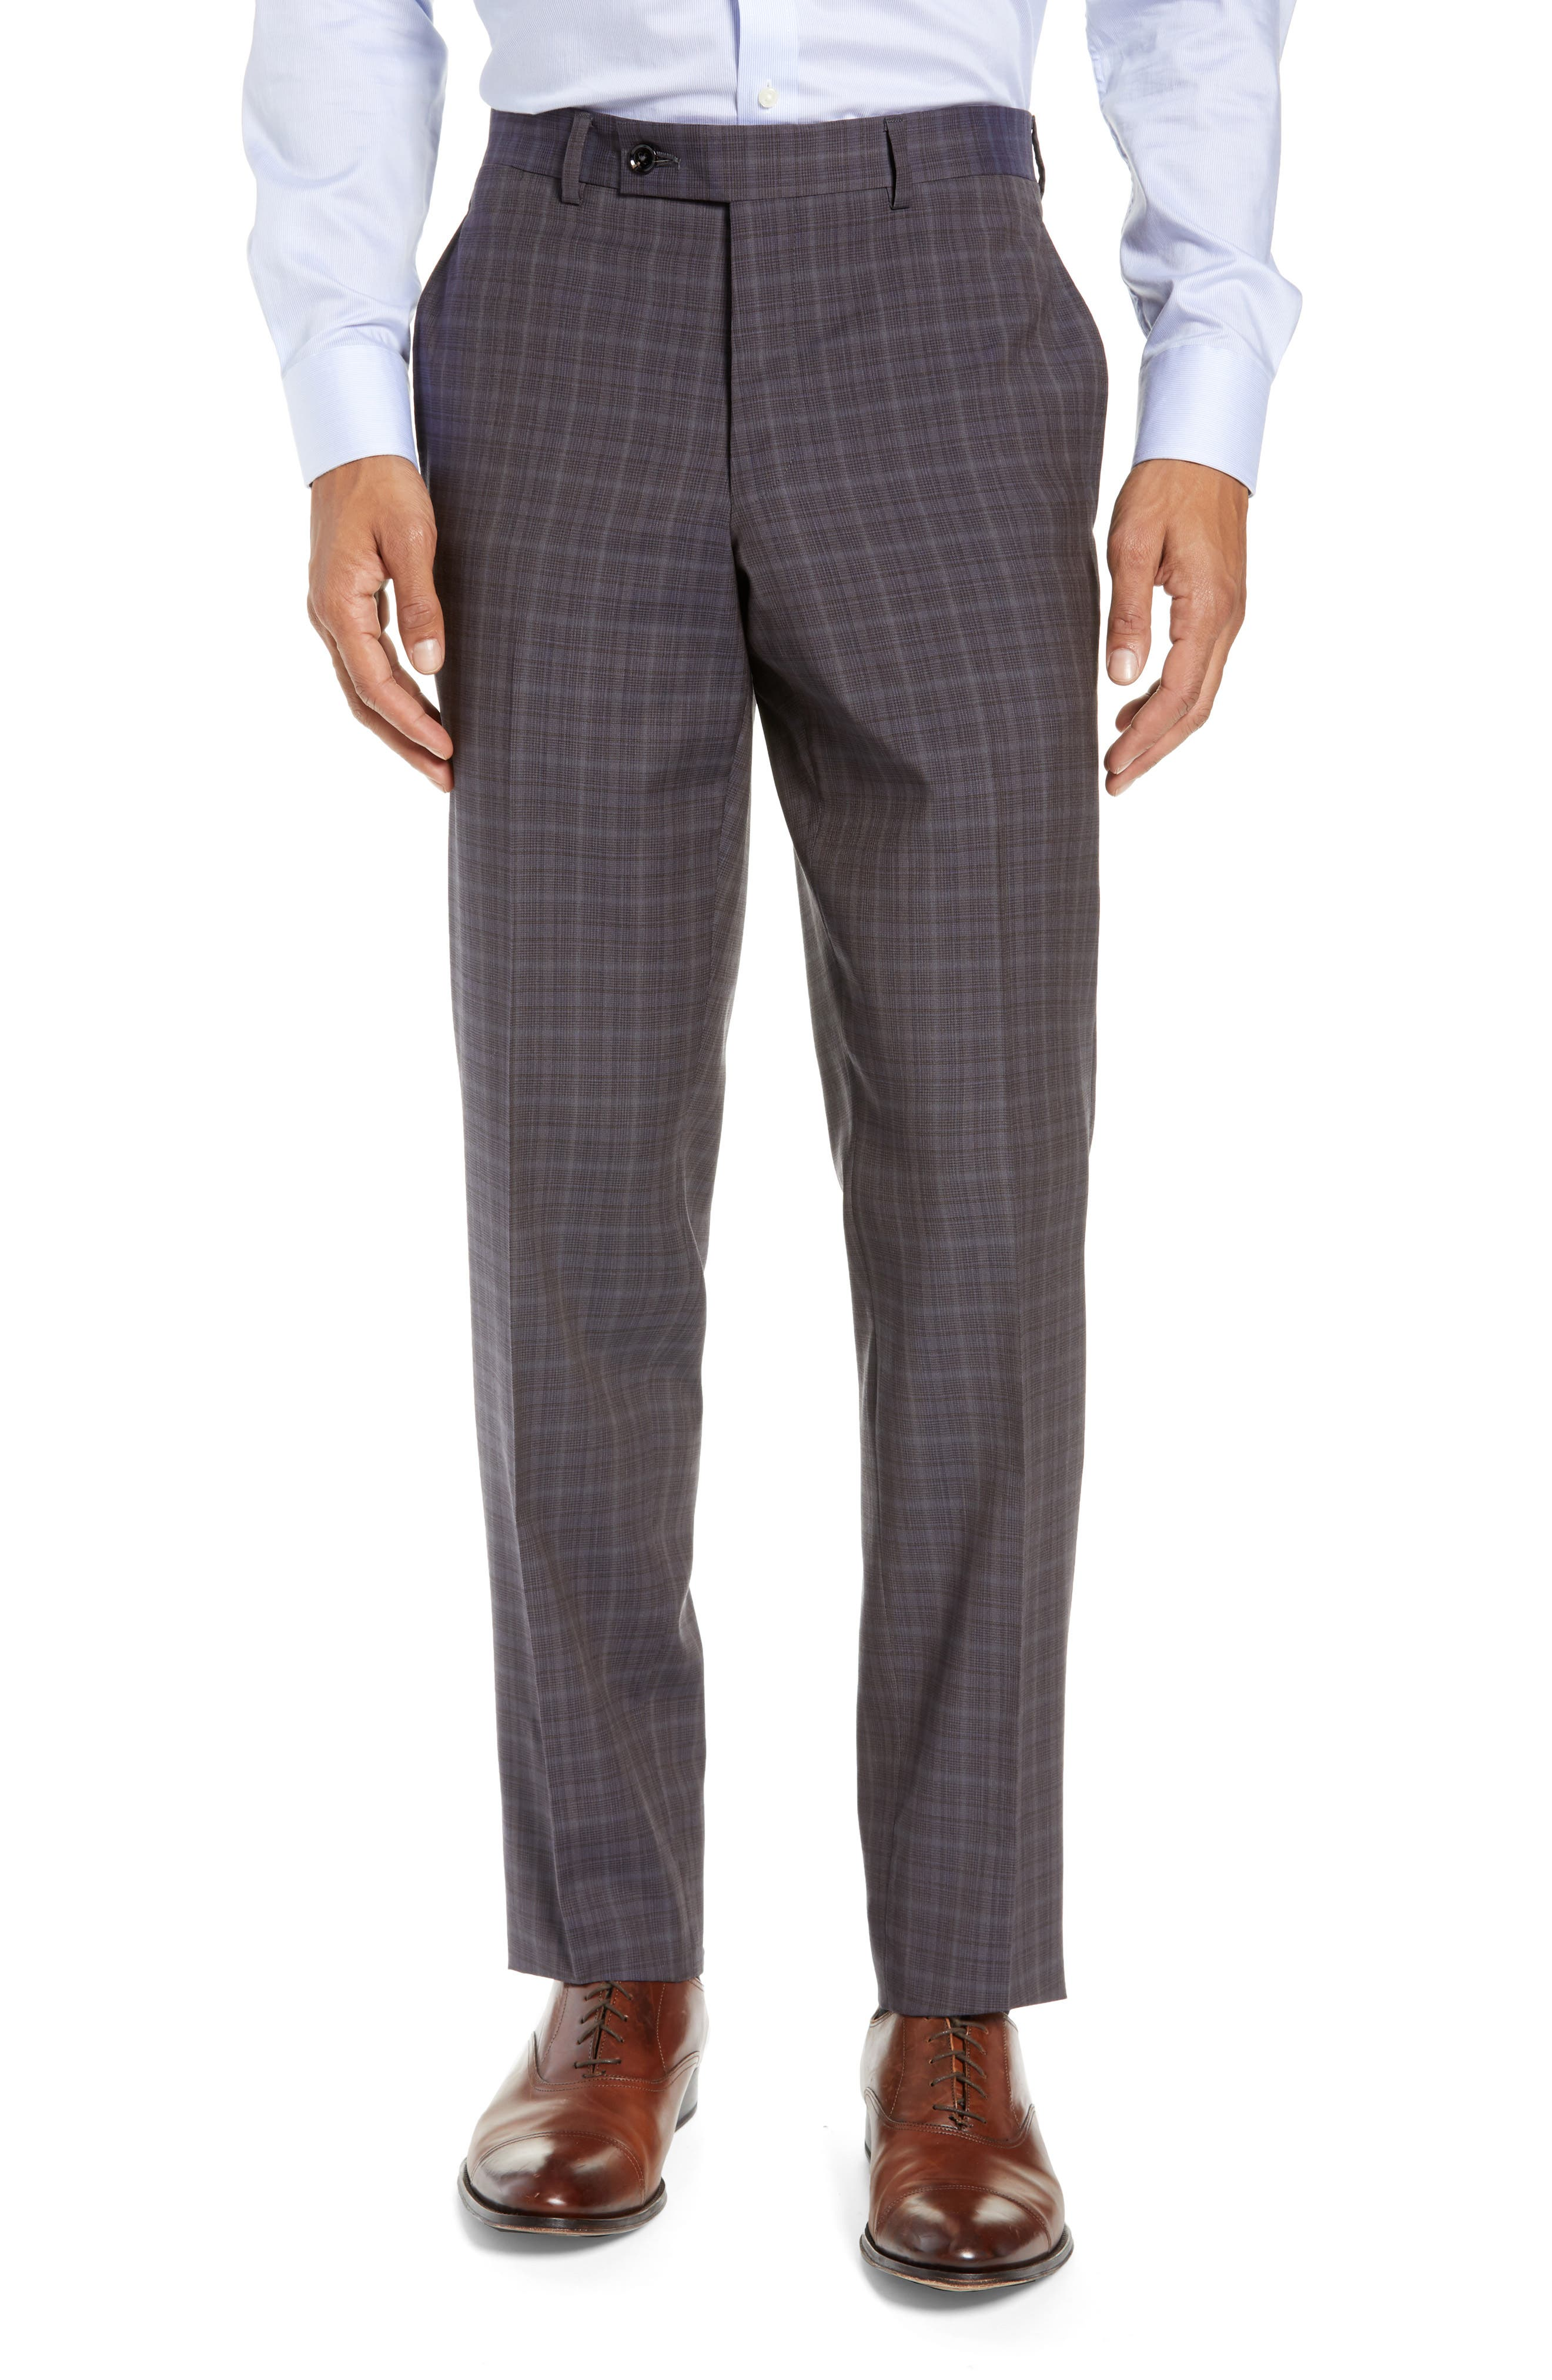 TED BAKER LONDON,                             Jay Trim Fit Plaid Wool Suit,                             Alternate thumbnail 6, color,                             TAUPE